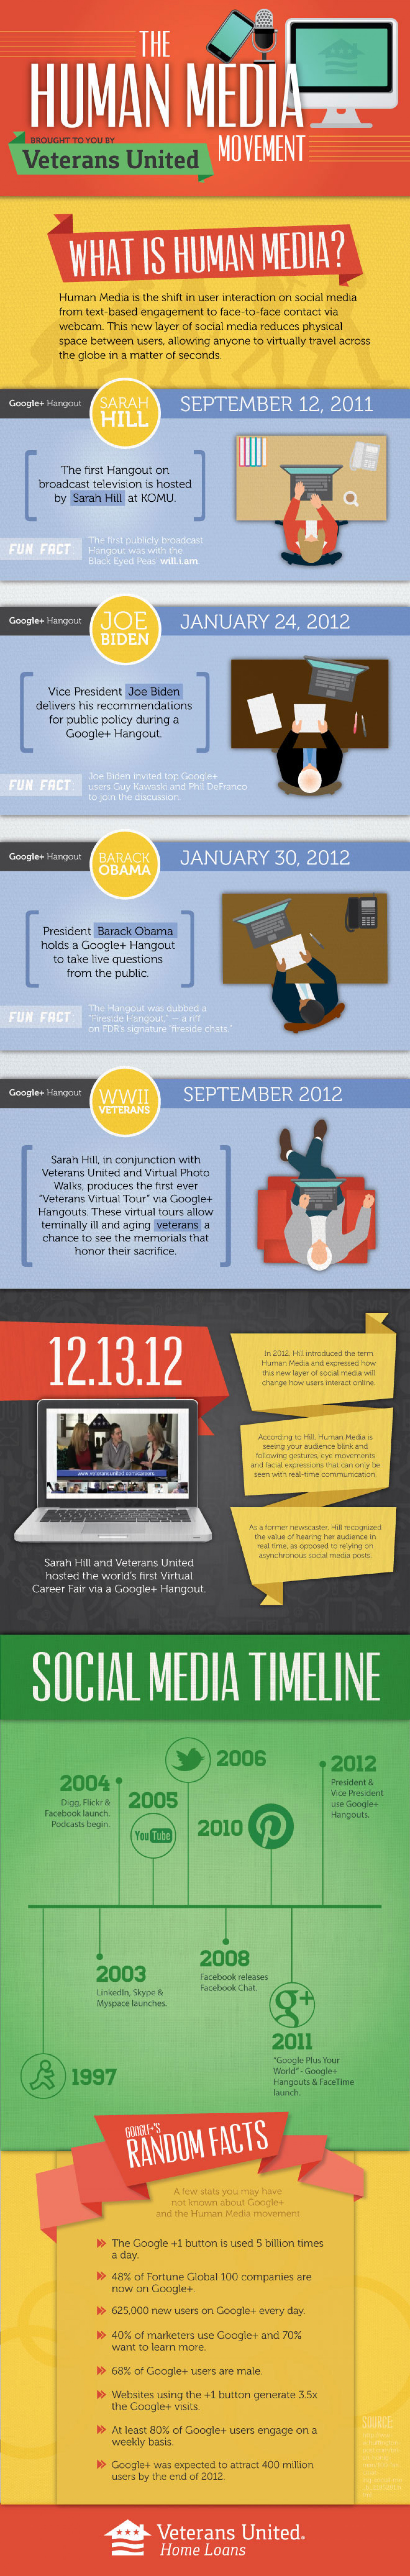 The Human Media Movement Infographic